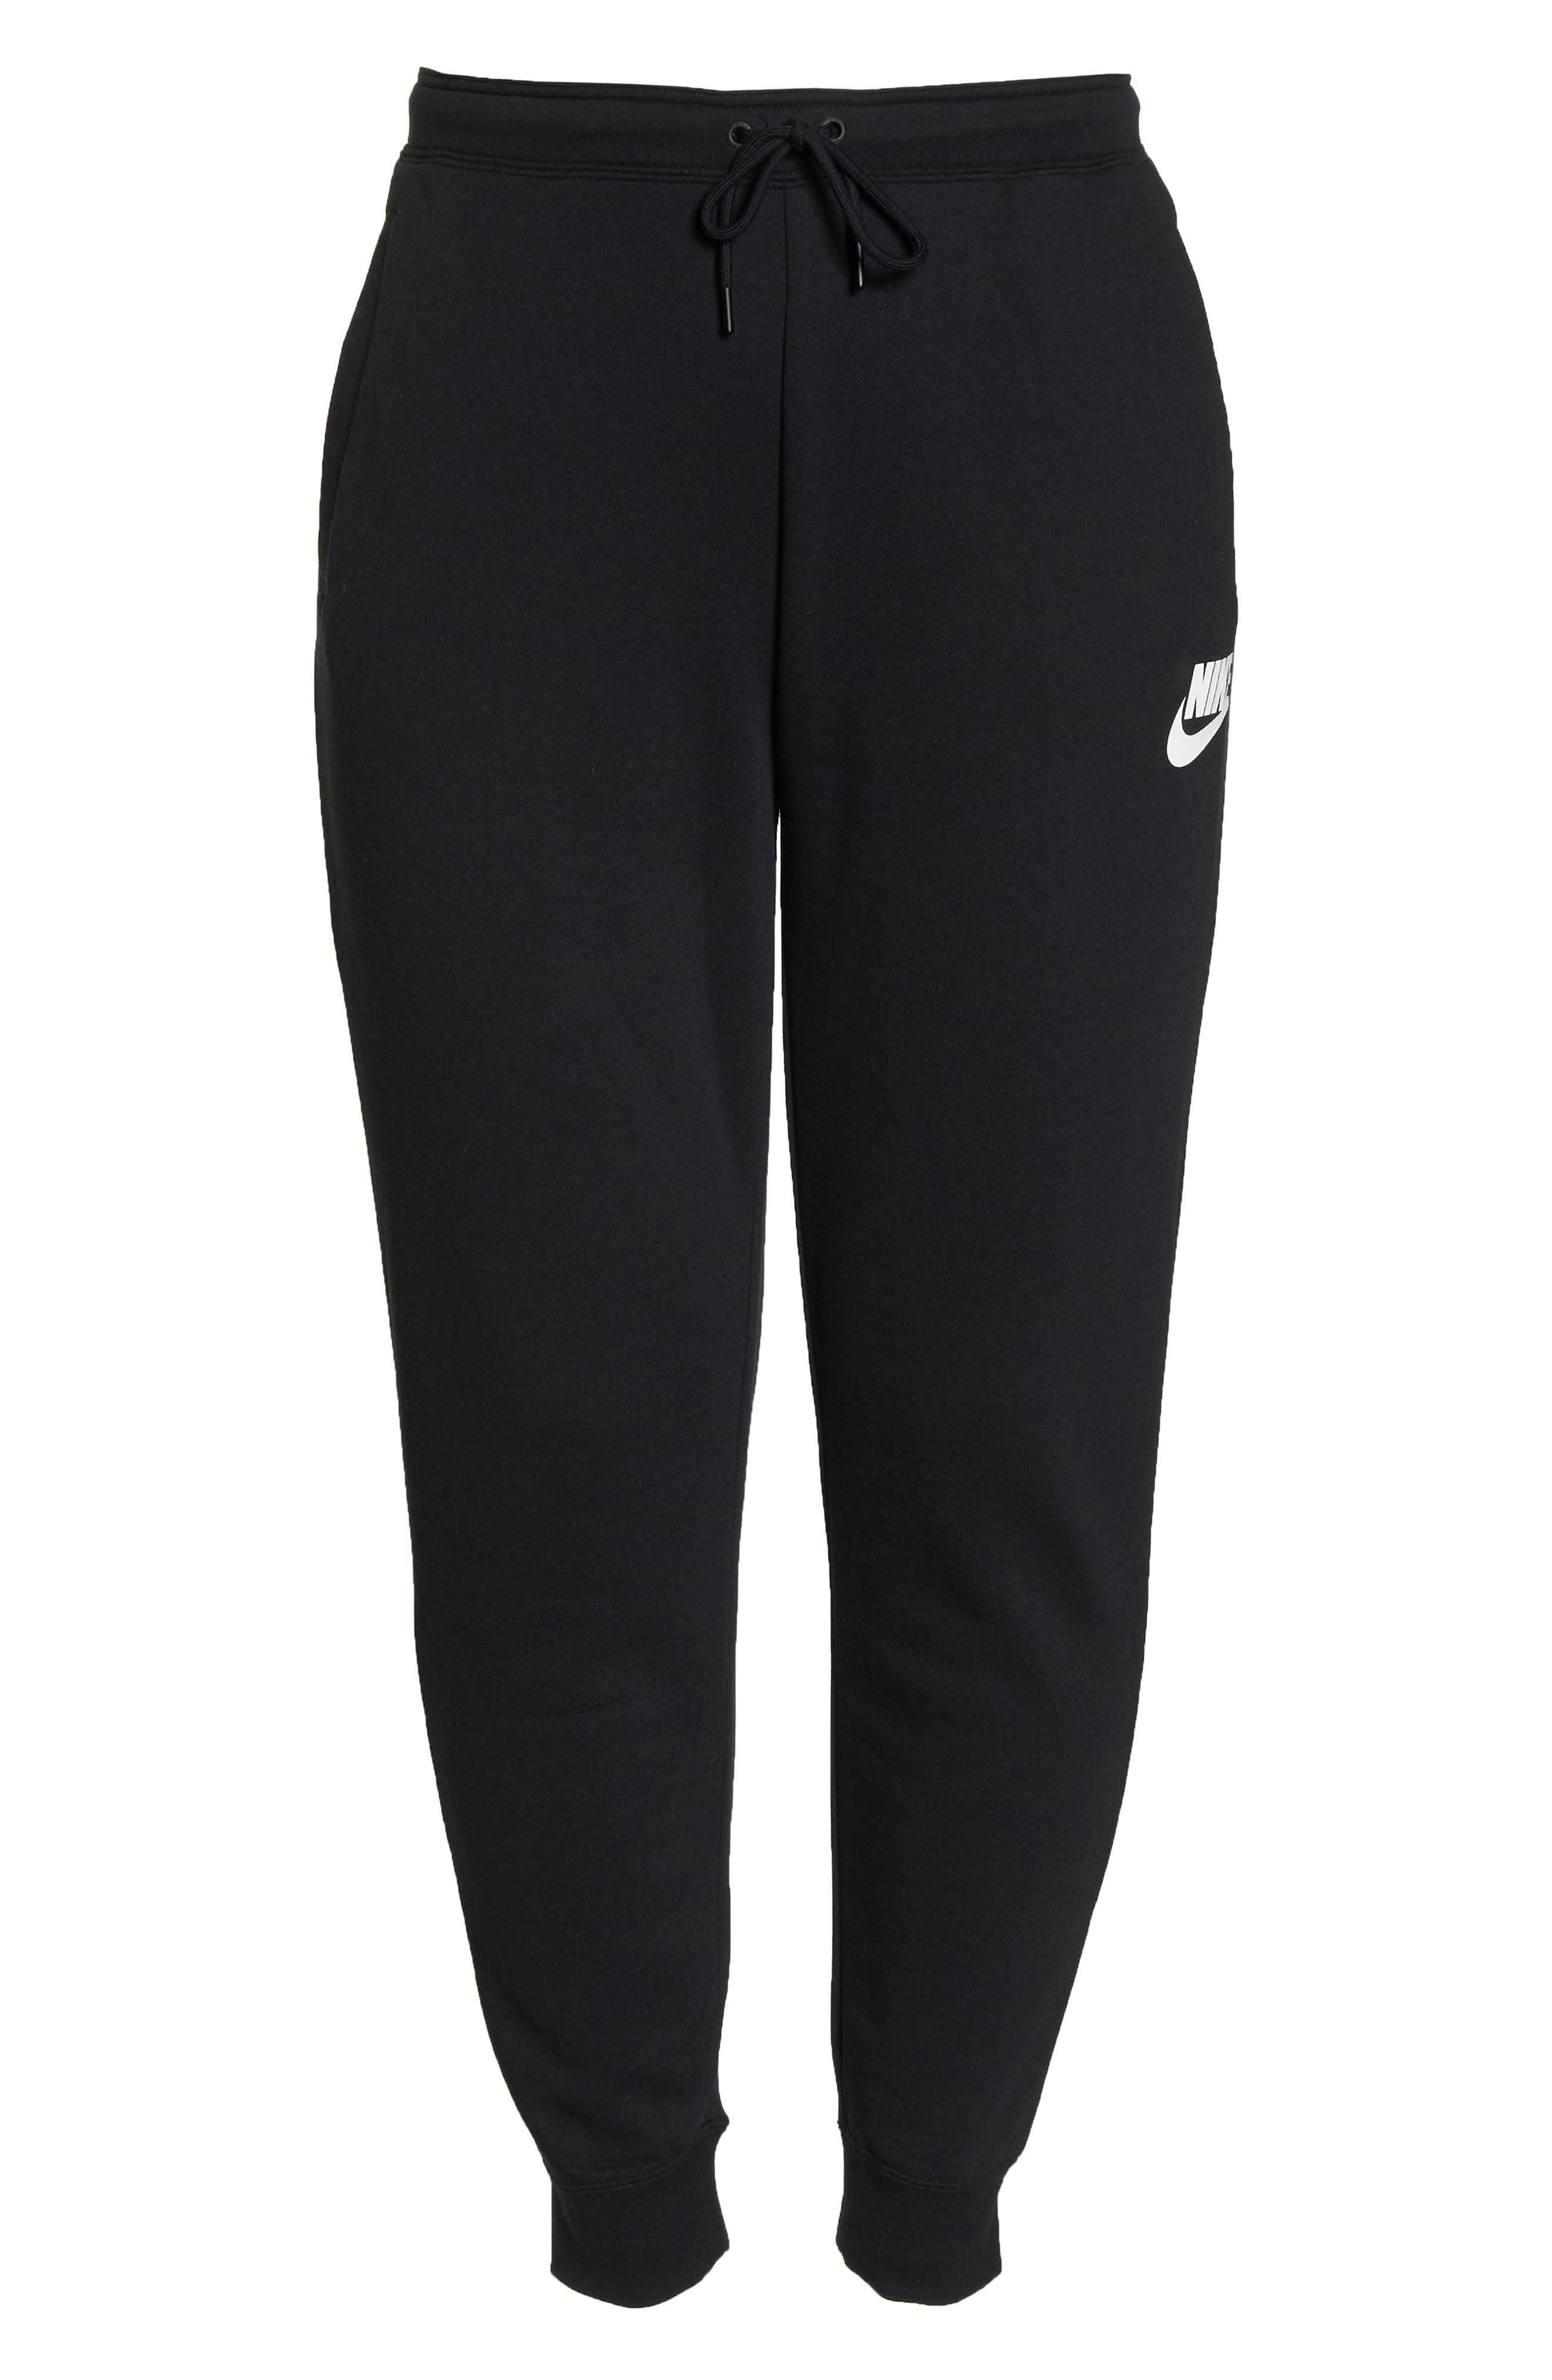 Sportswear Rally Jogger Pants,                             Alternate thumbnail 7, color,                             BLACK/ BLACK/ WHITE